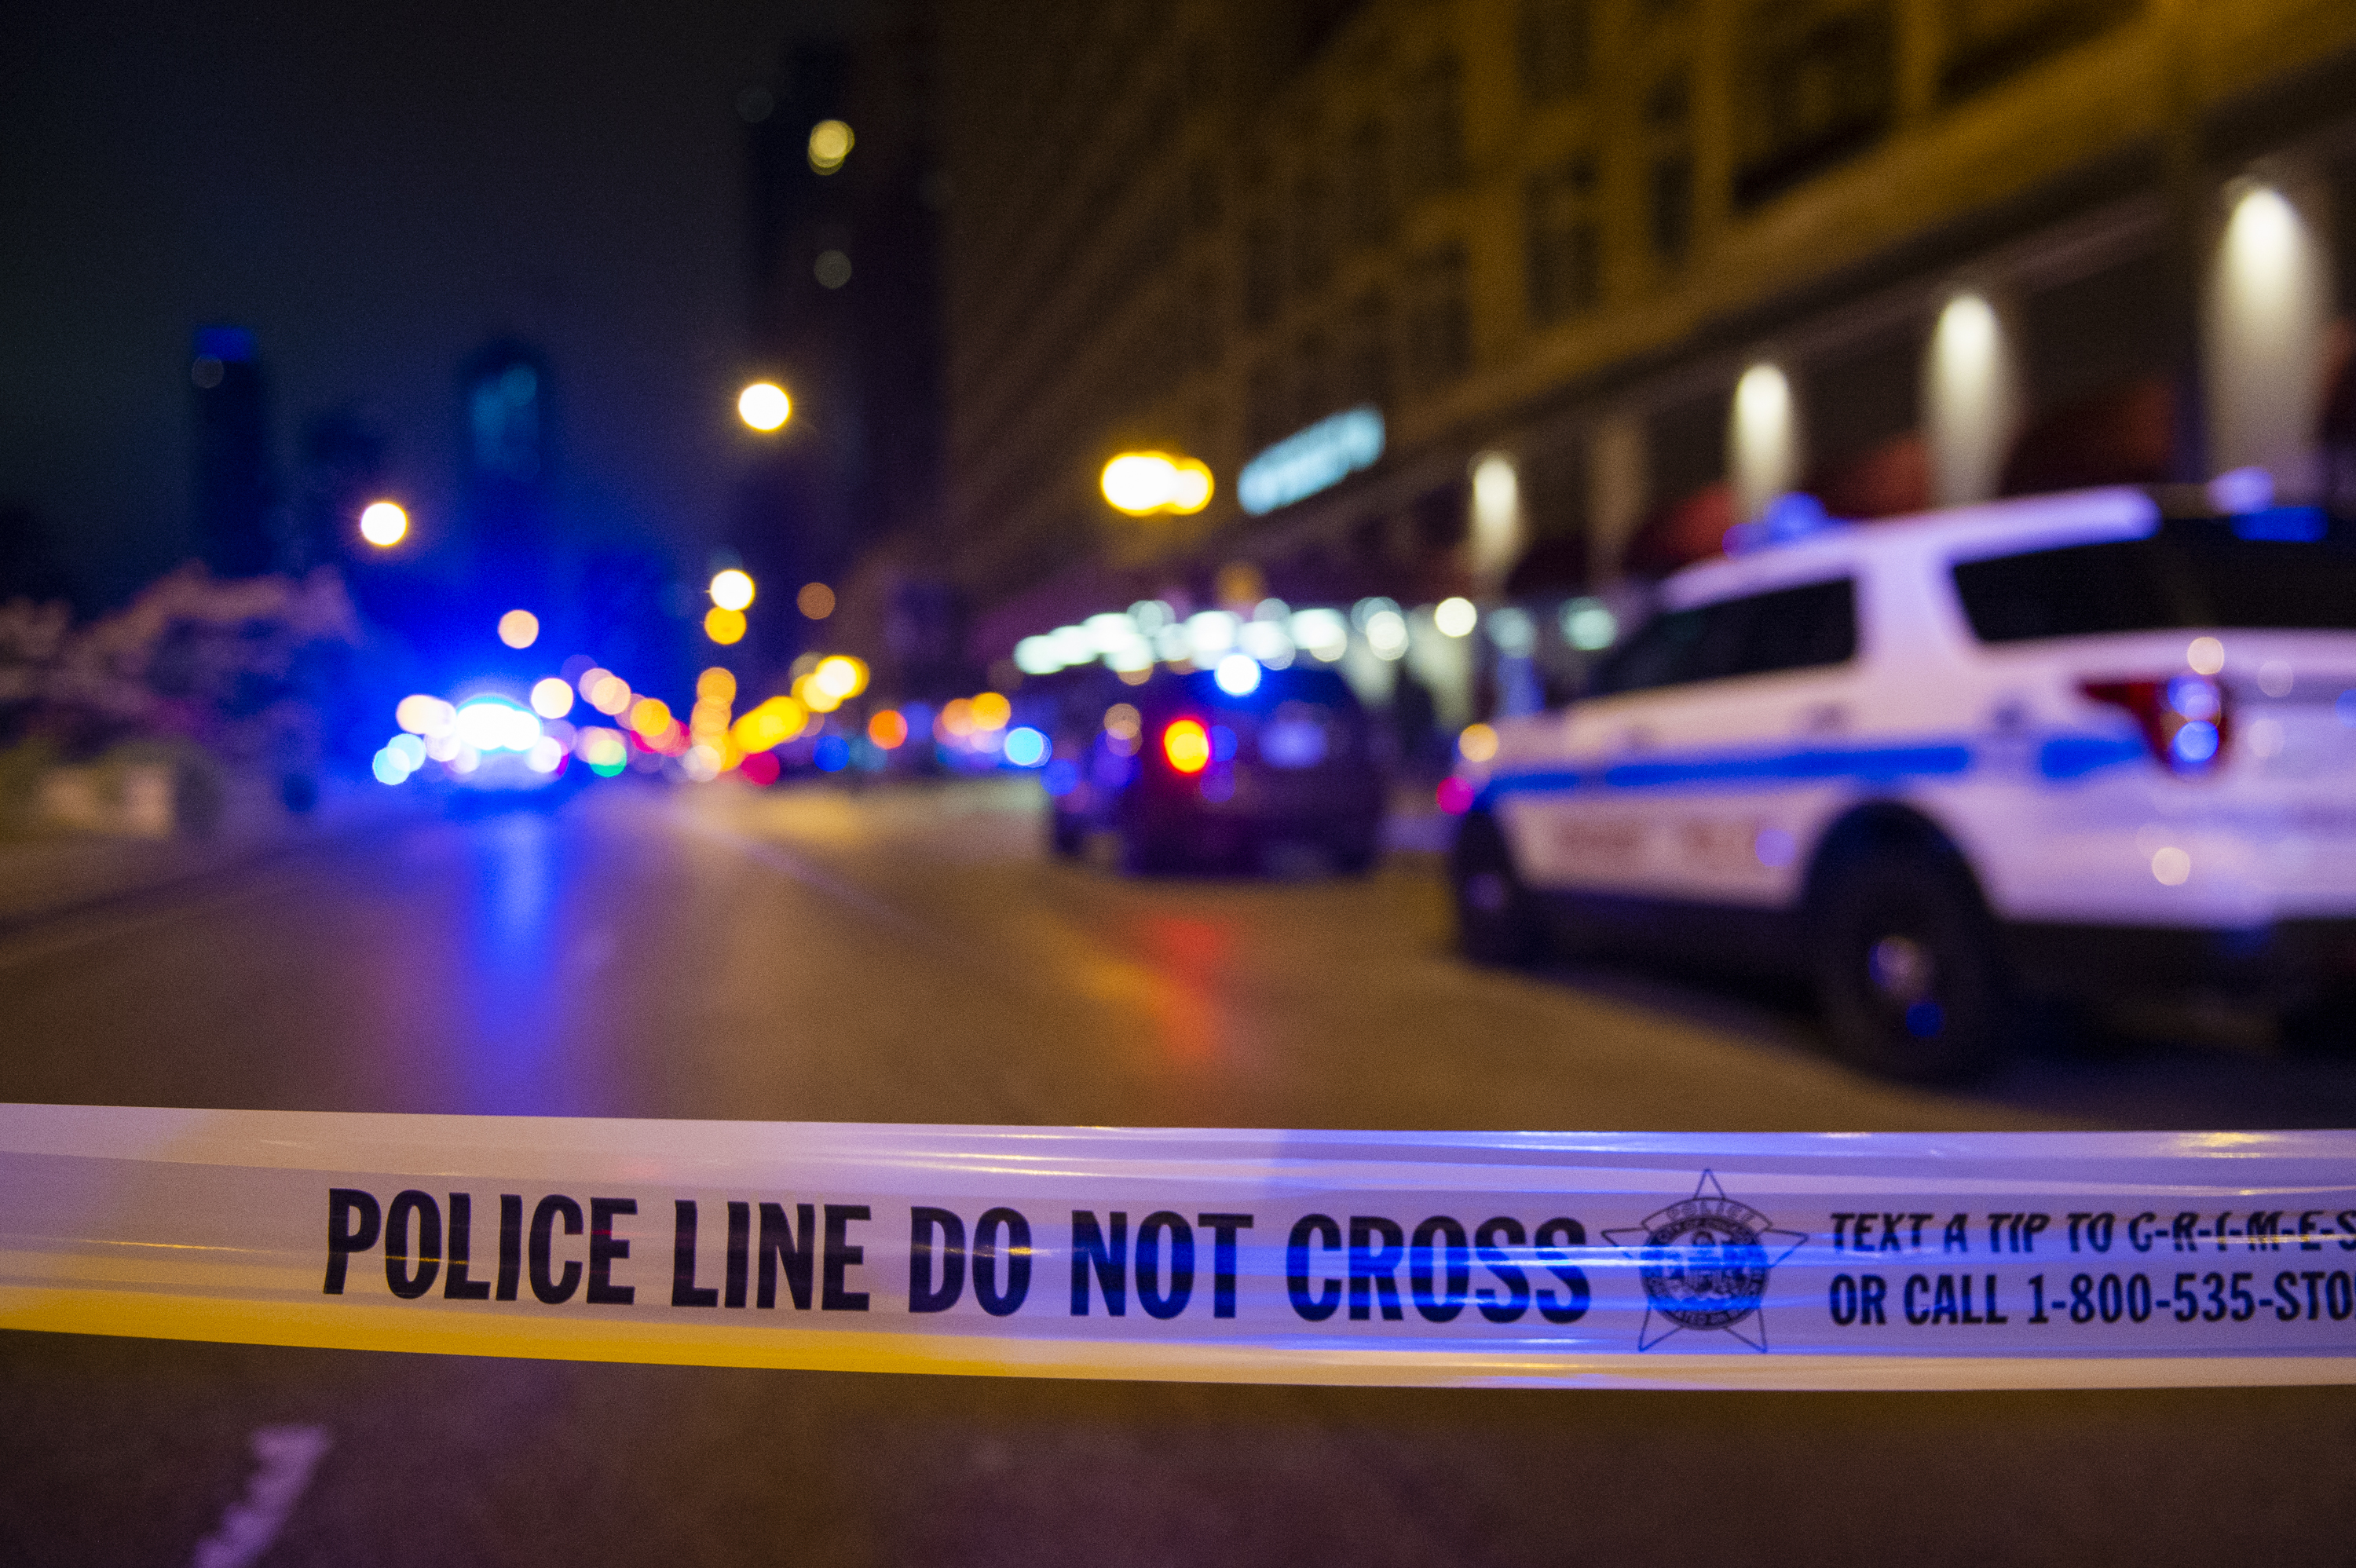 Police are warning residents about a series of armed robberies and carjackings since Nov. 21, 2019, in Bucktown, Vittum Park and the South Loop.